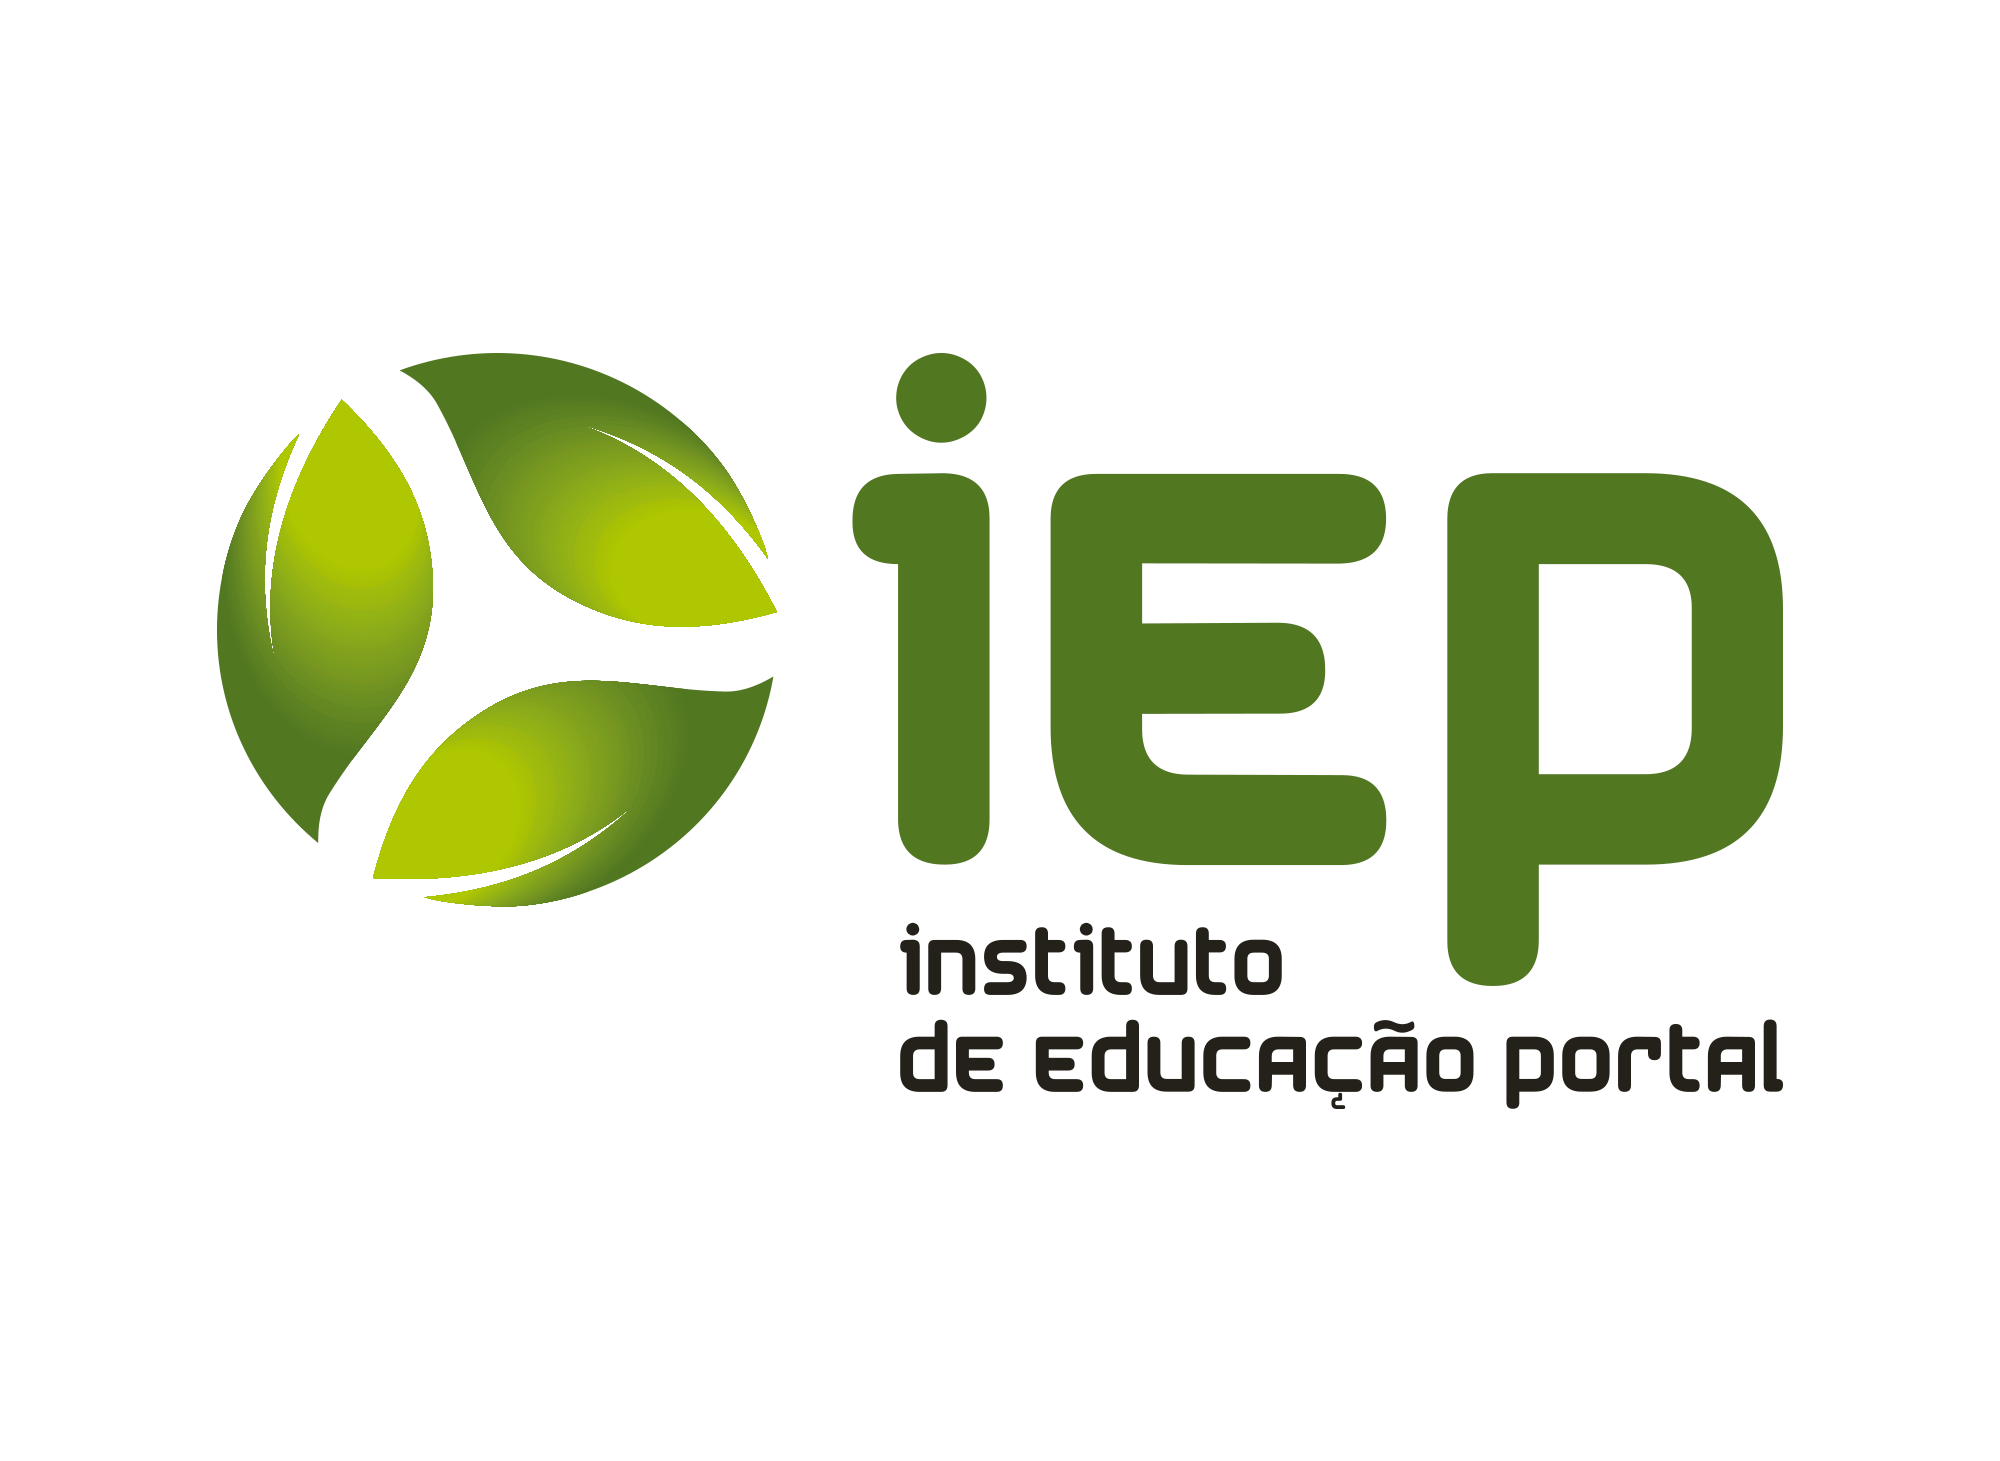 instituto-educacao-portal-iep-clientes-atendidos-agencia-diretriz-digital-marketing-fortaleza